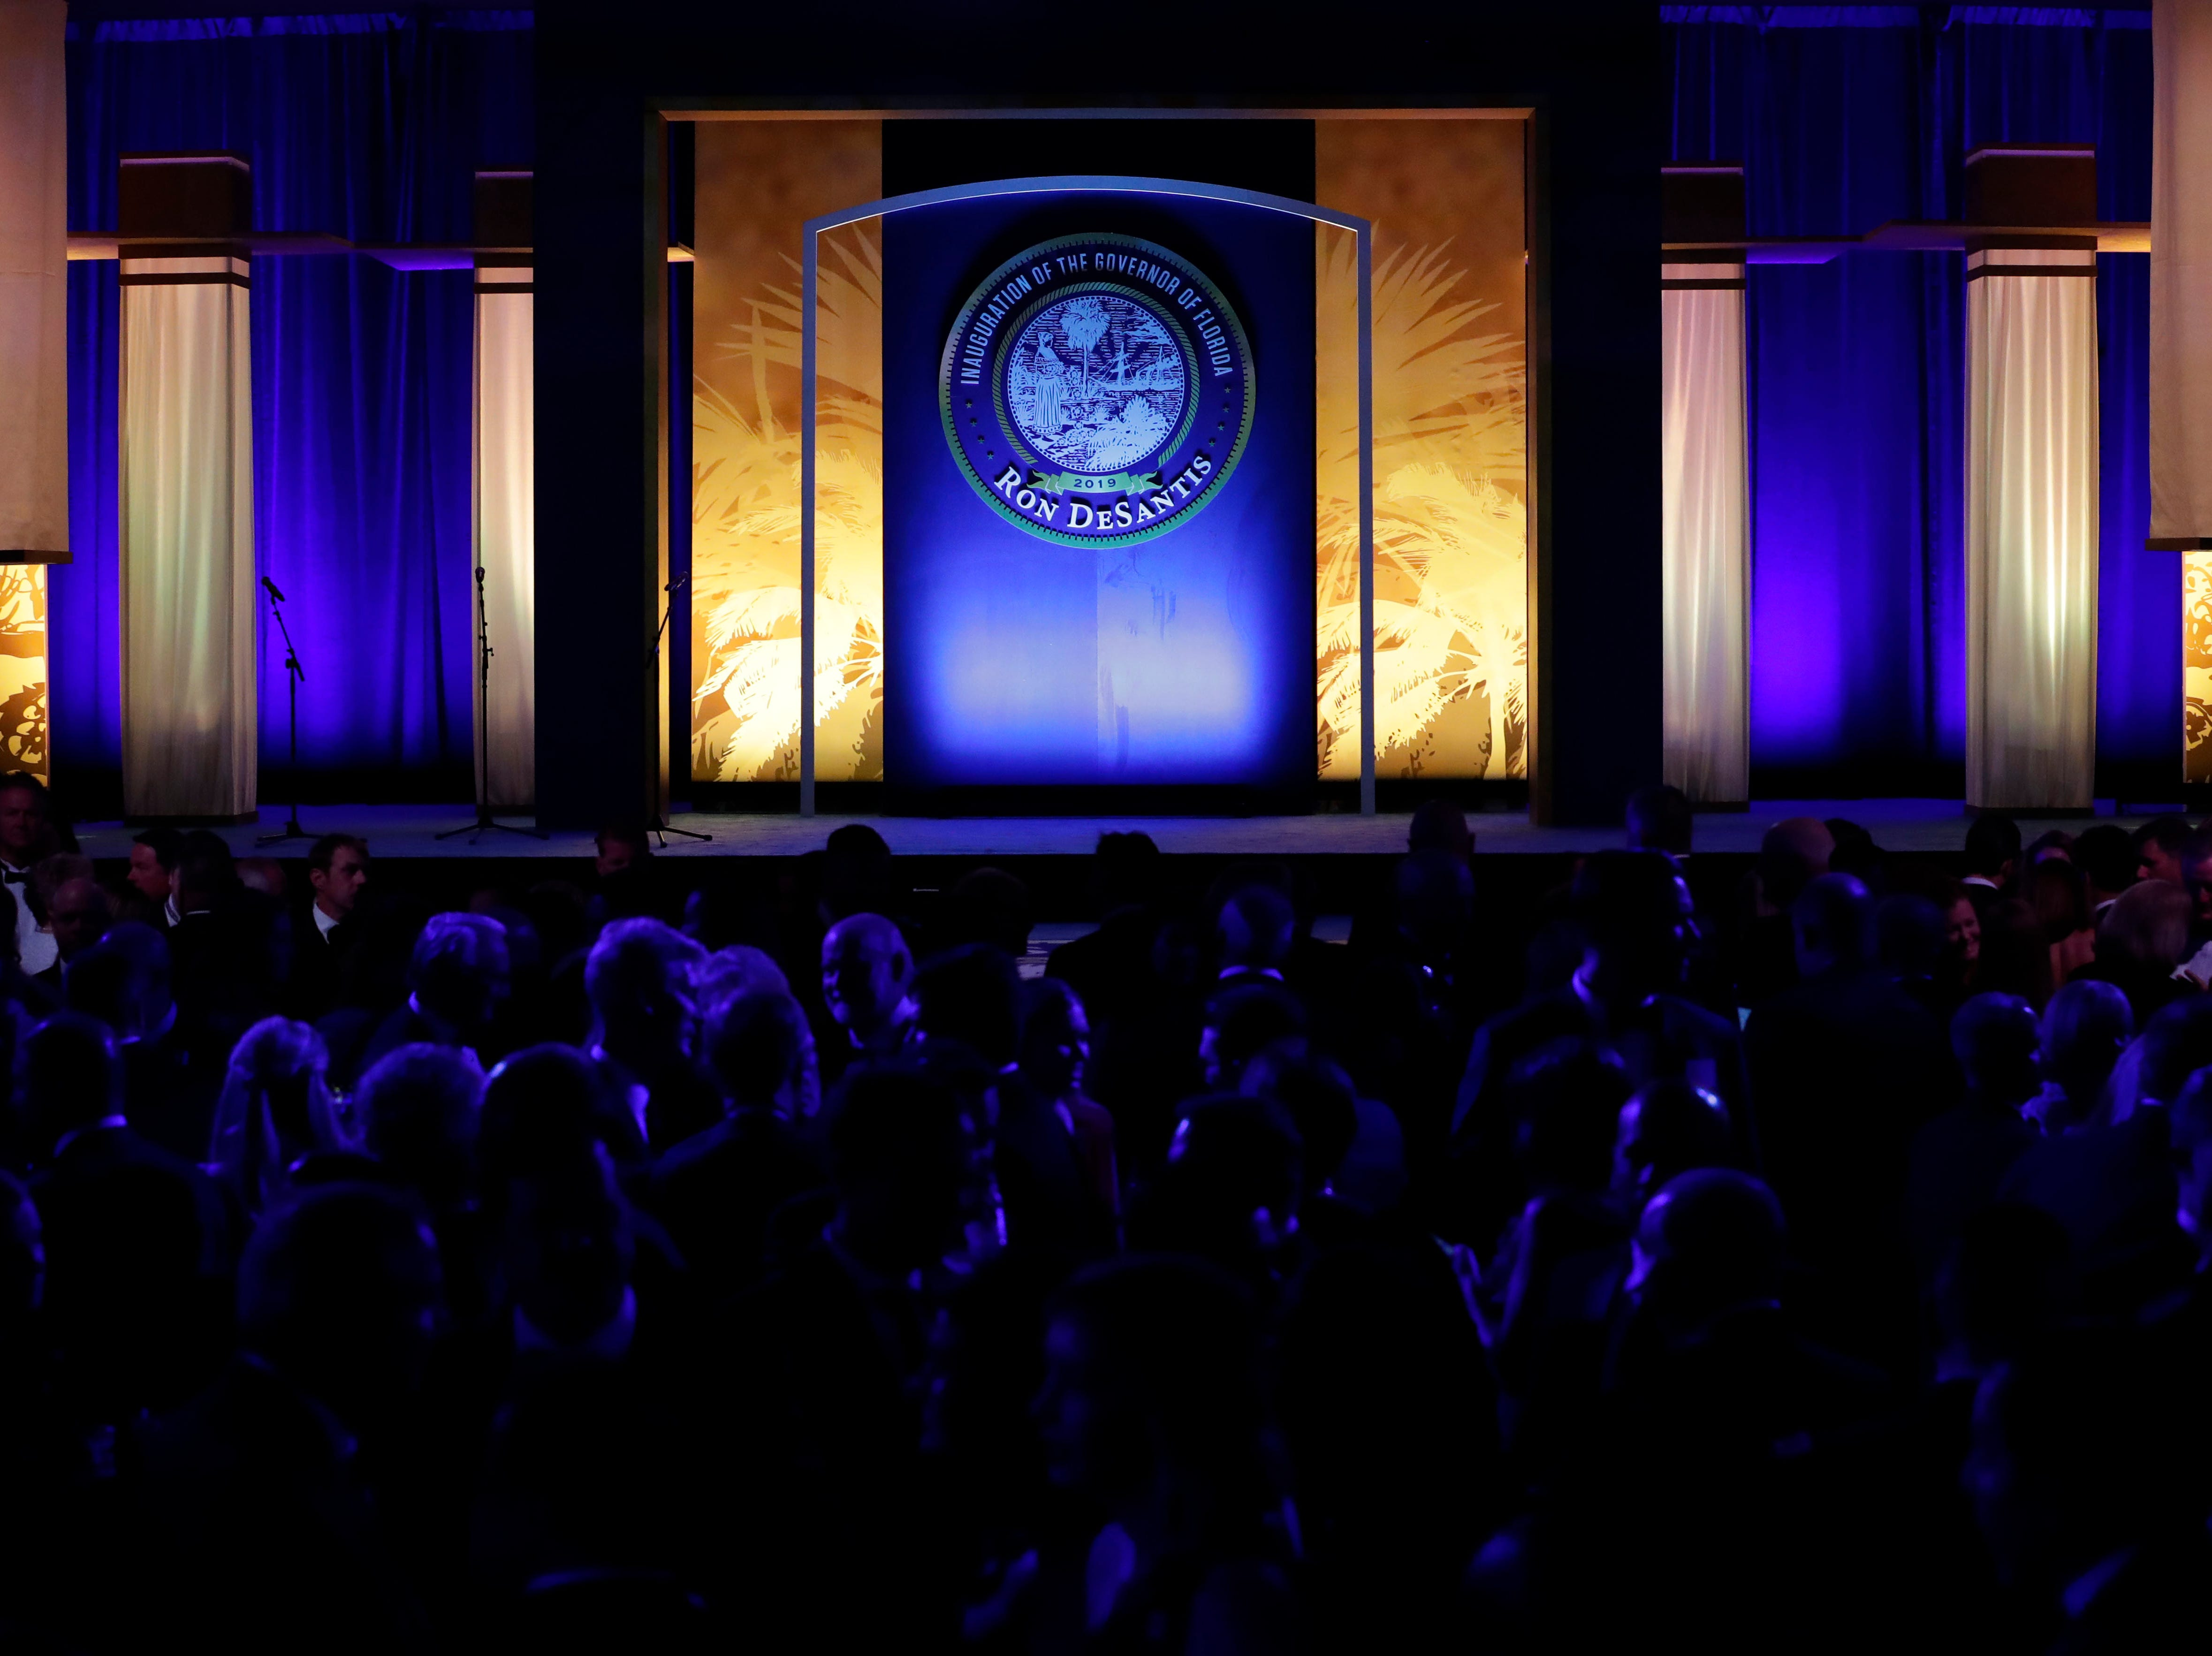 Hundreds of guests from all over Florida attend Florida's 46th Governor's Inaugural Ball at the Tucker Civic Center, Tuesday, Jan. 8, 2019. Guests begin to huddle around the stage as they await the arrival of Gov. Ron DeSantis.